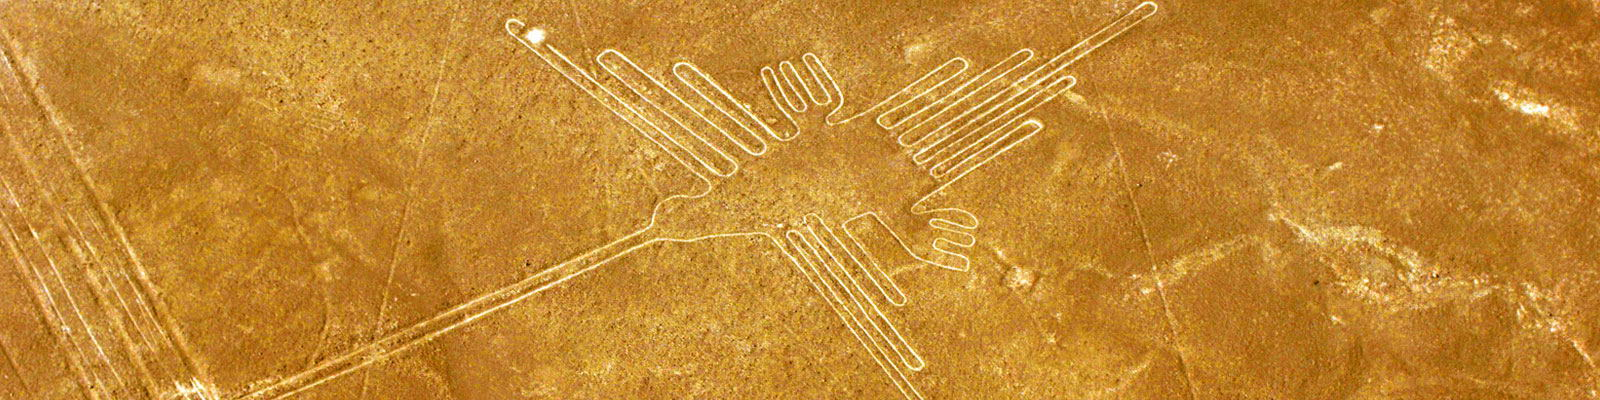 Nasca lines and geoglyphs Hummingbird